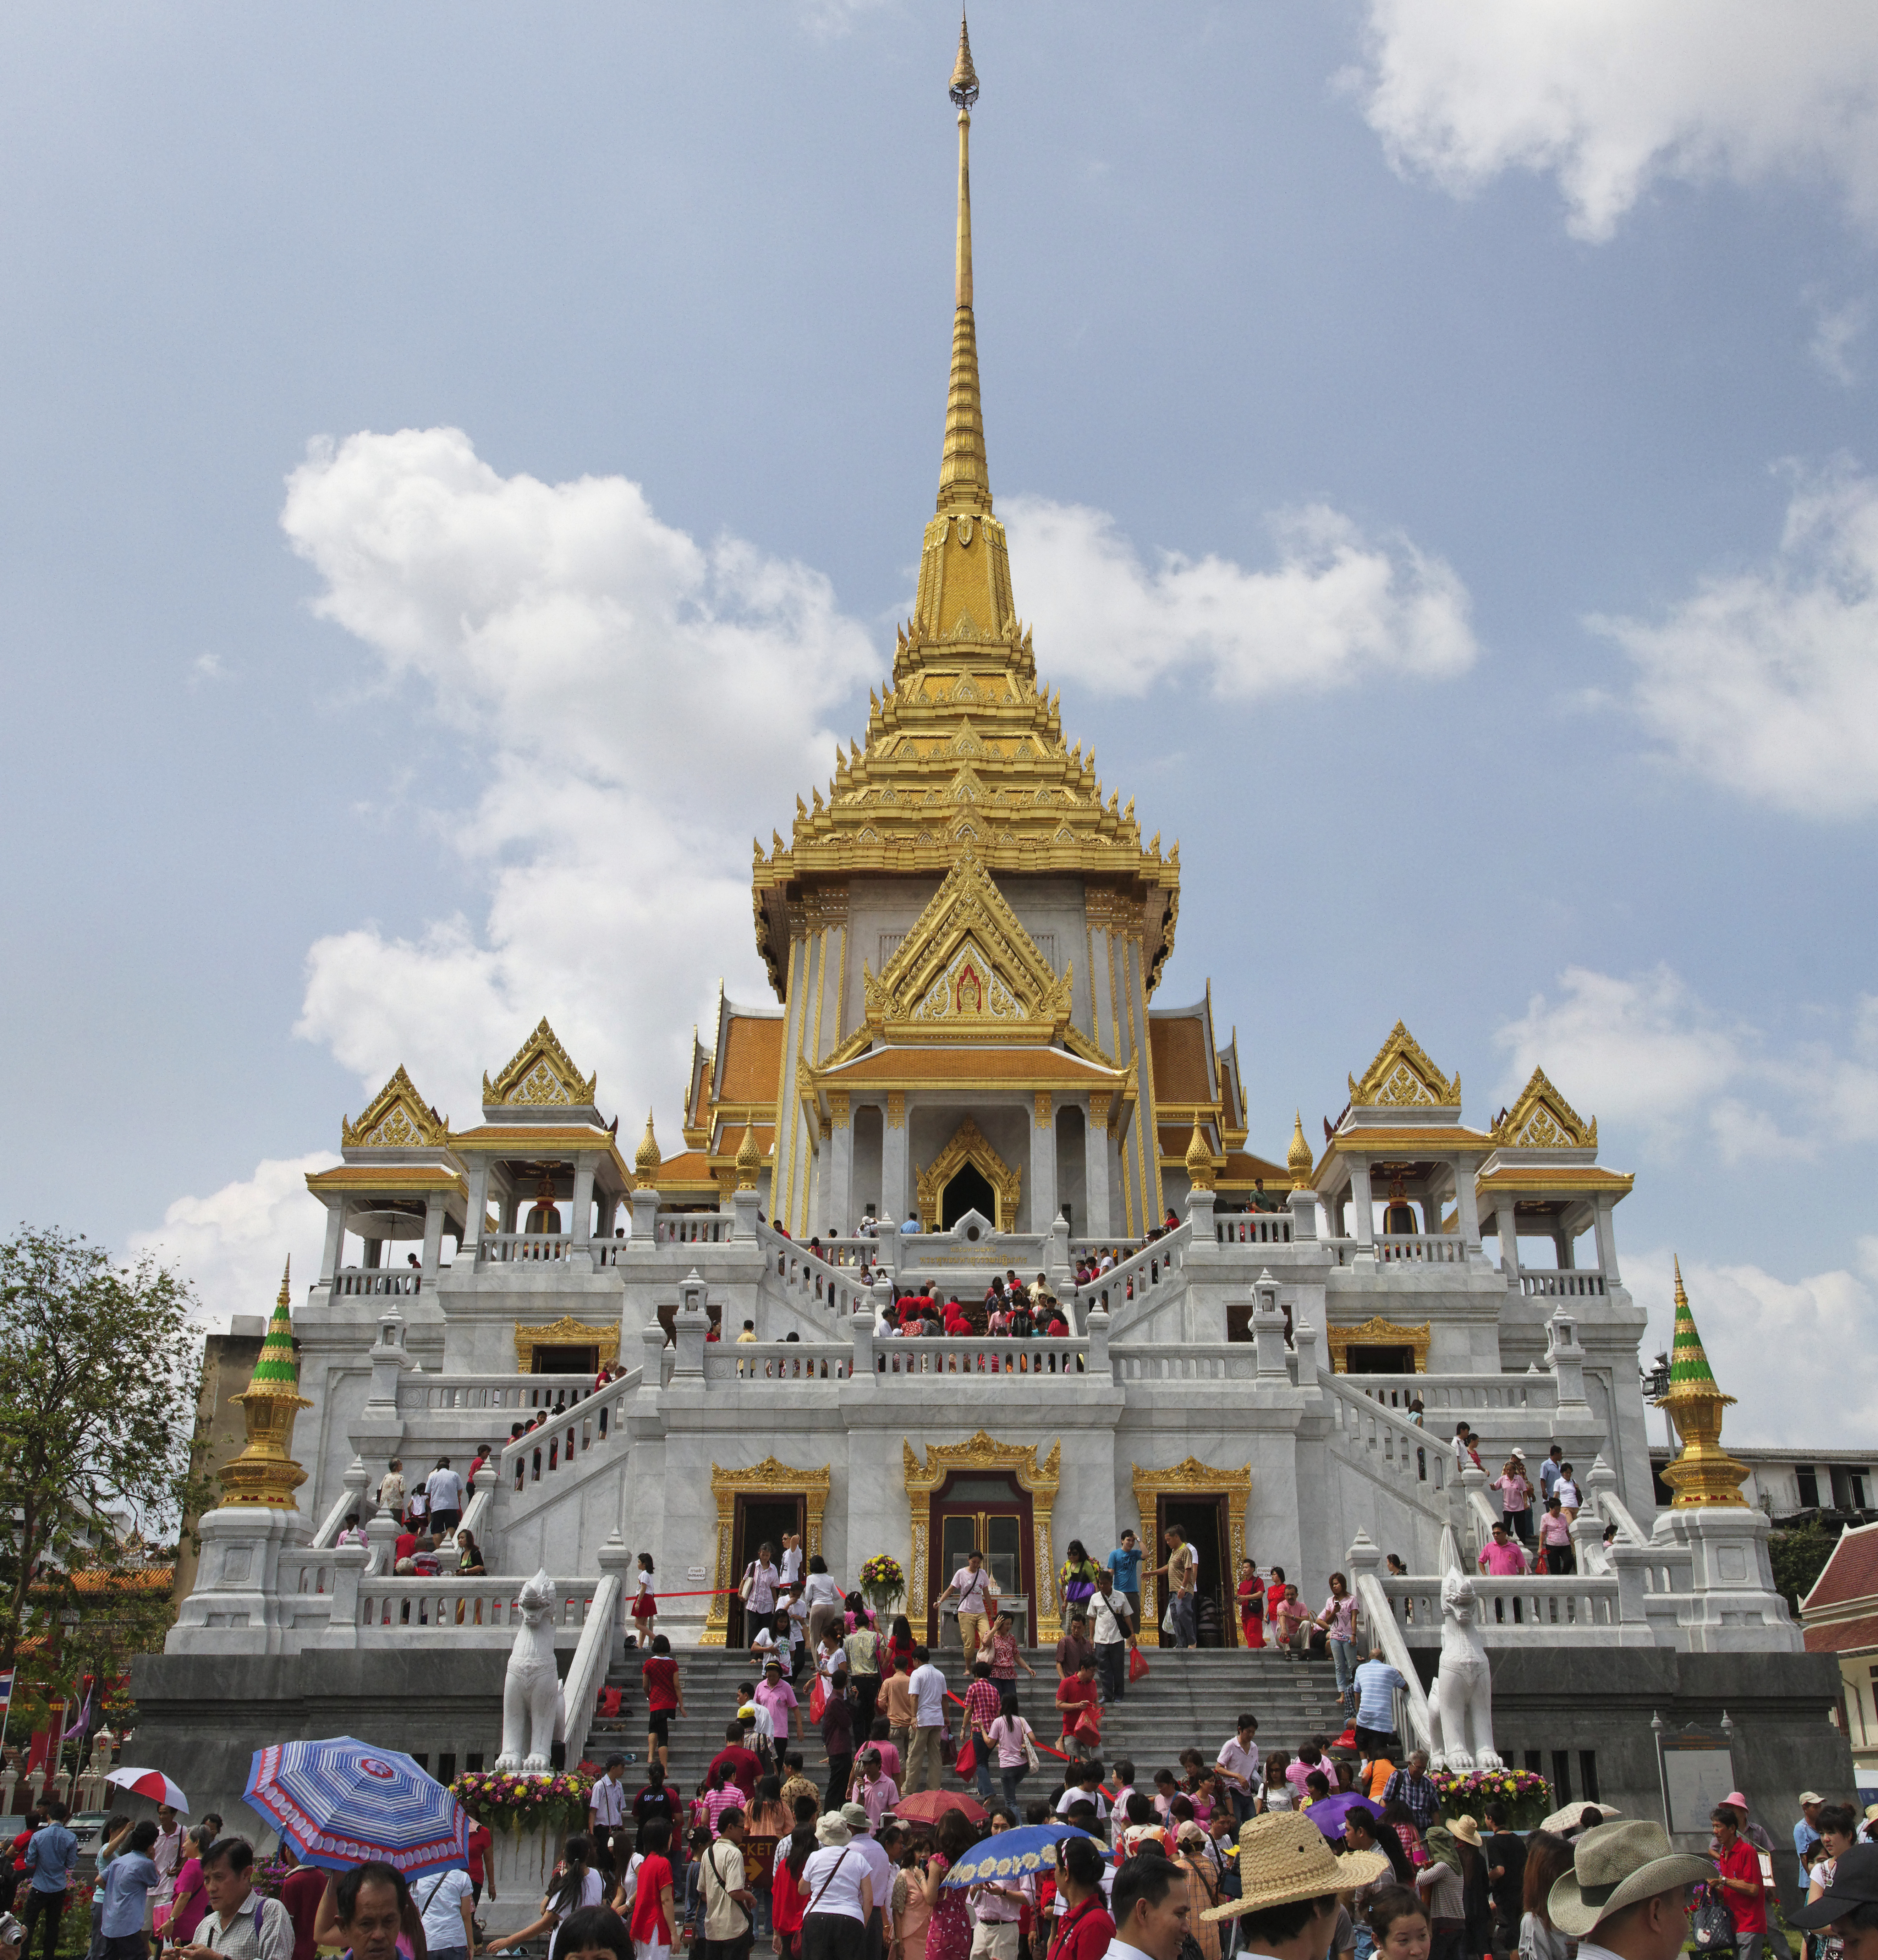 Wat Traimit contains Golden Buddha - the world's largest solid gold statue.